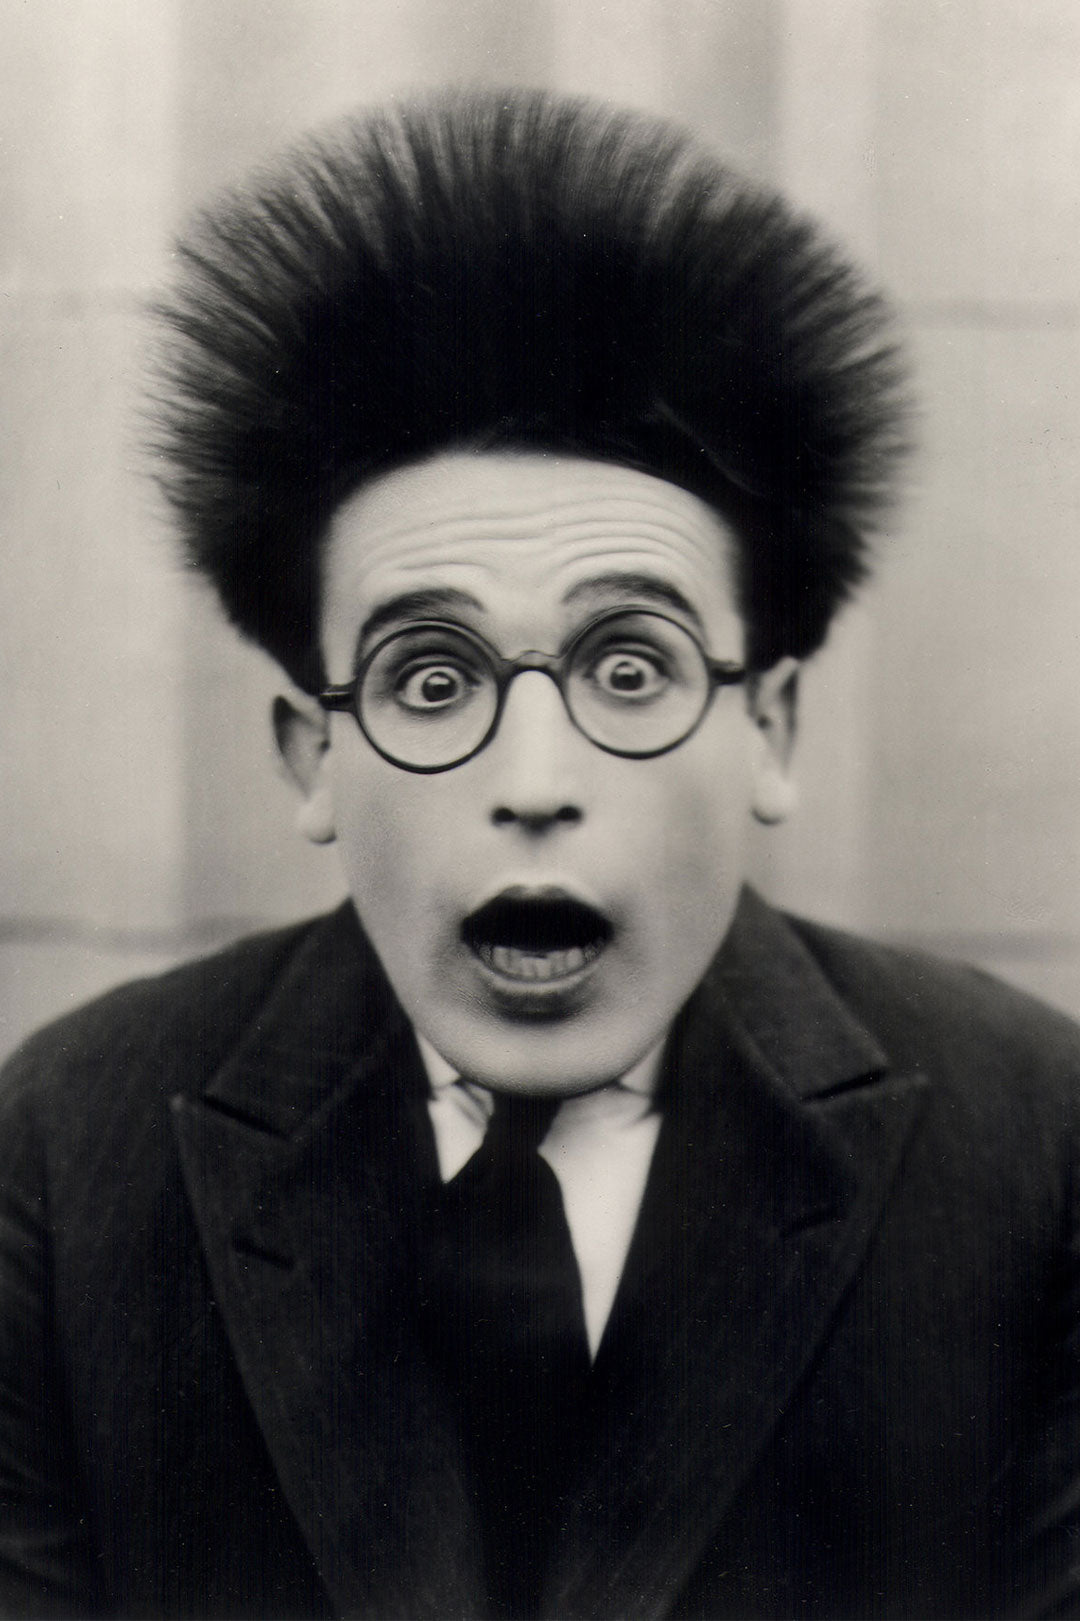 Actor Harold Lloyd with his hair standing up wearing his round spectacles